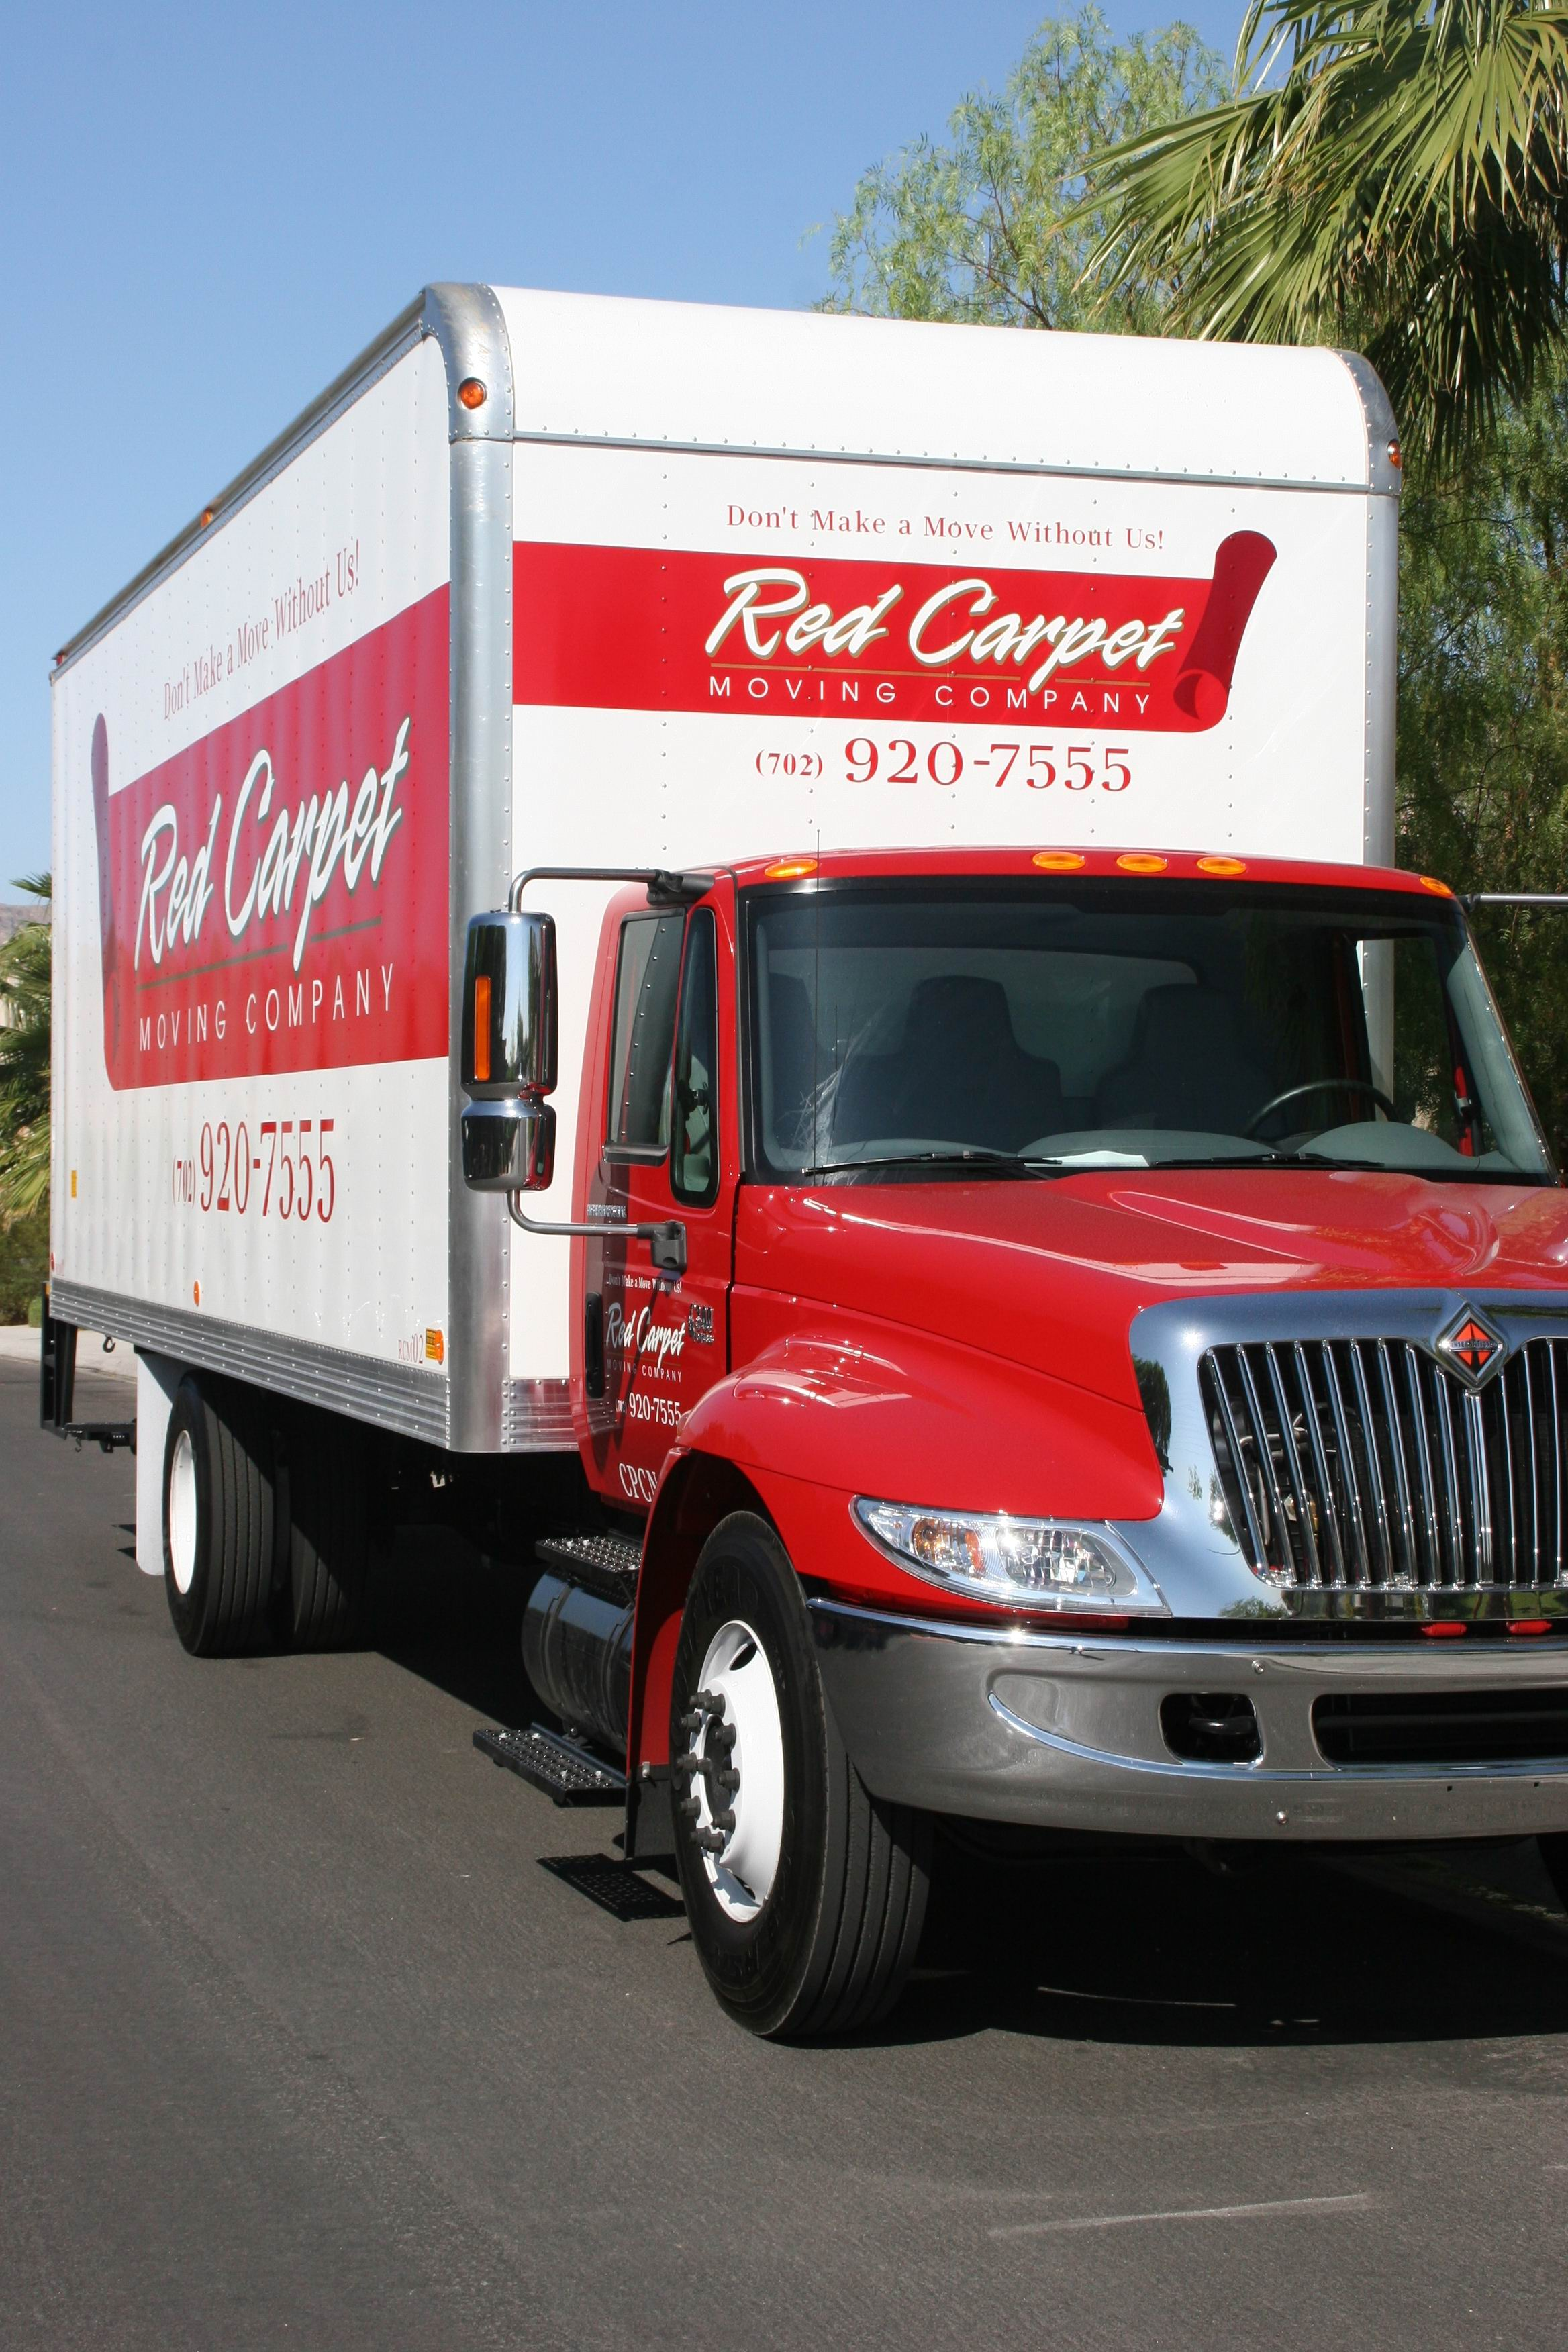 Red Carpet Moving Company  Las Vegas, Nv  Company Profile. Allstate Insurance Life Insurance. Community College Classes For High School Students. Phlebotomy Classes In Jackson Ms. Grants For Women To Go To College. Career And Succession Planning. California Elderly Care Colleges On Common App. Opening A Savings Account With Bank Of America. 2010 Nissan Altima Hybrid For Sale